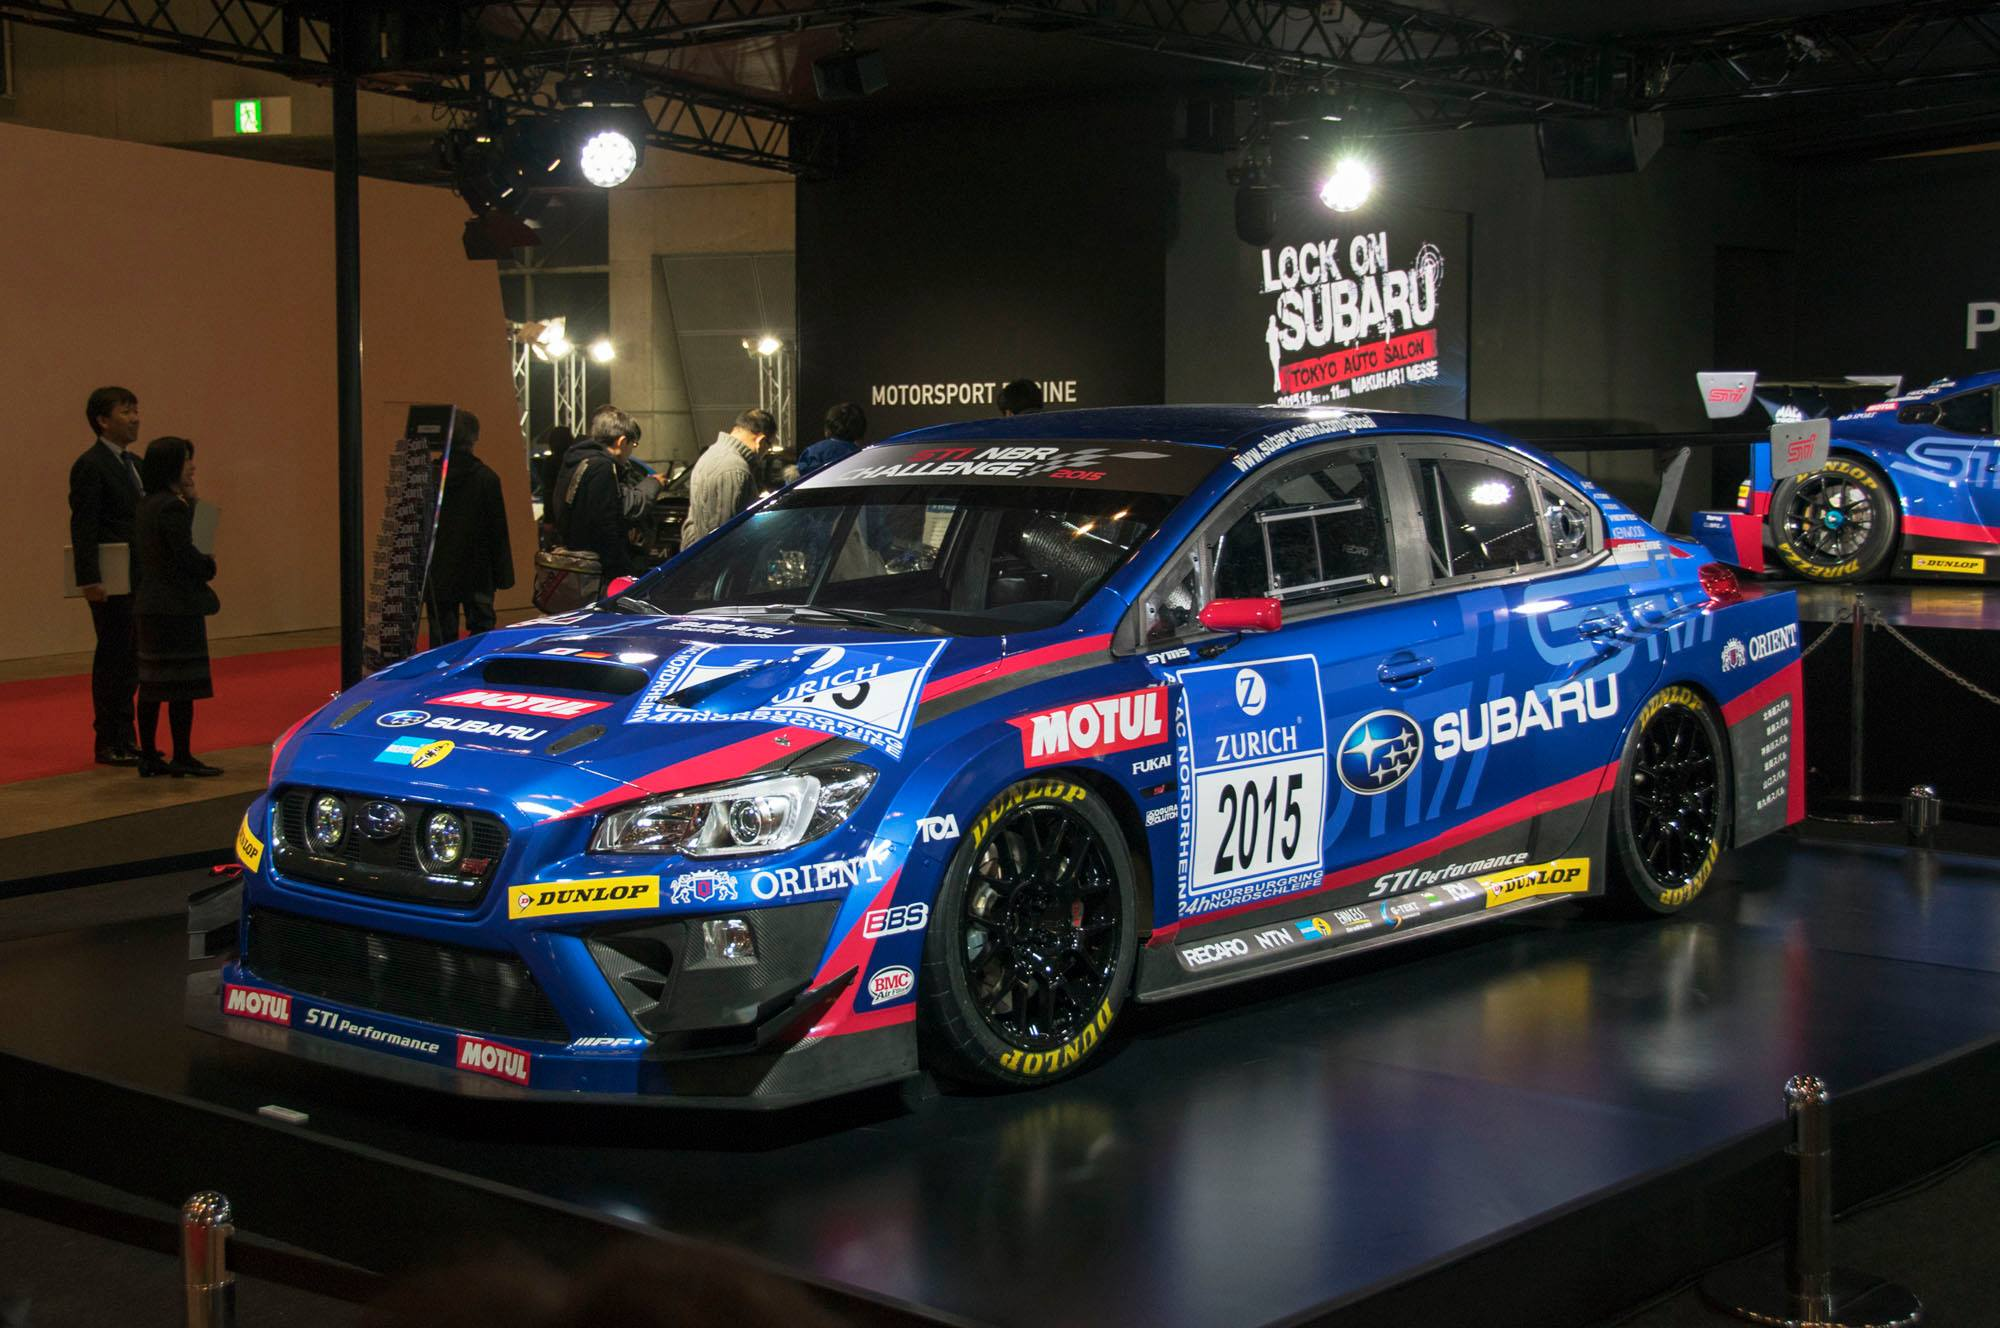 Brz Vs Wrx >> 2015 Subaru Racers Revealed: WRX STI for Nurburgring 24H and BRZ GT300 - autoevolution